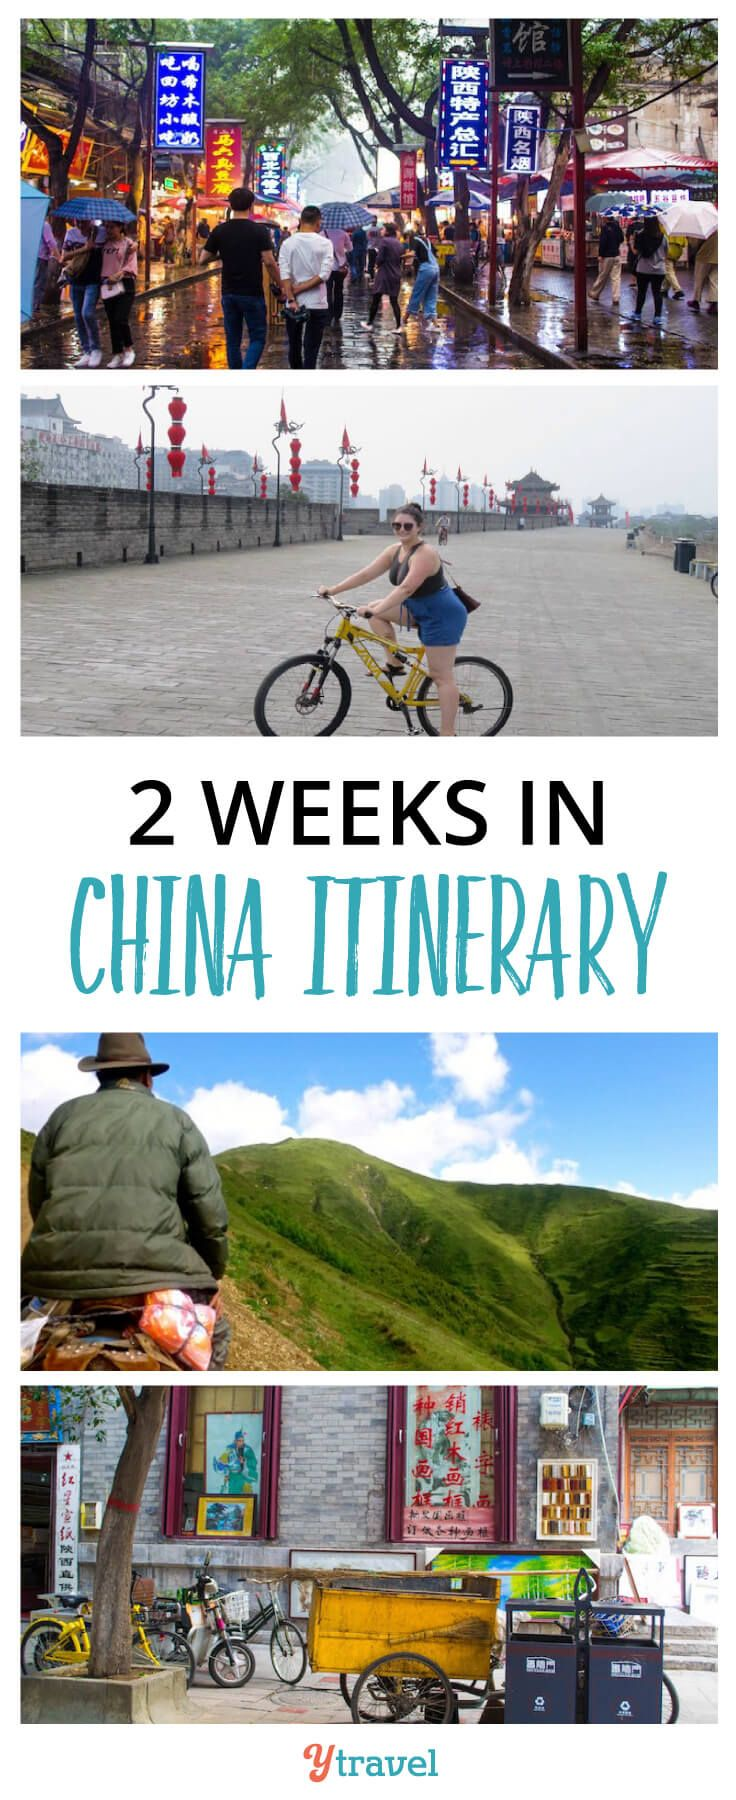 2 Week China Itinerary. Tips on the best places to visit in China, plus info on tours and accommodation. #China #Asia #travel